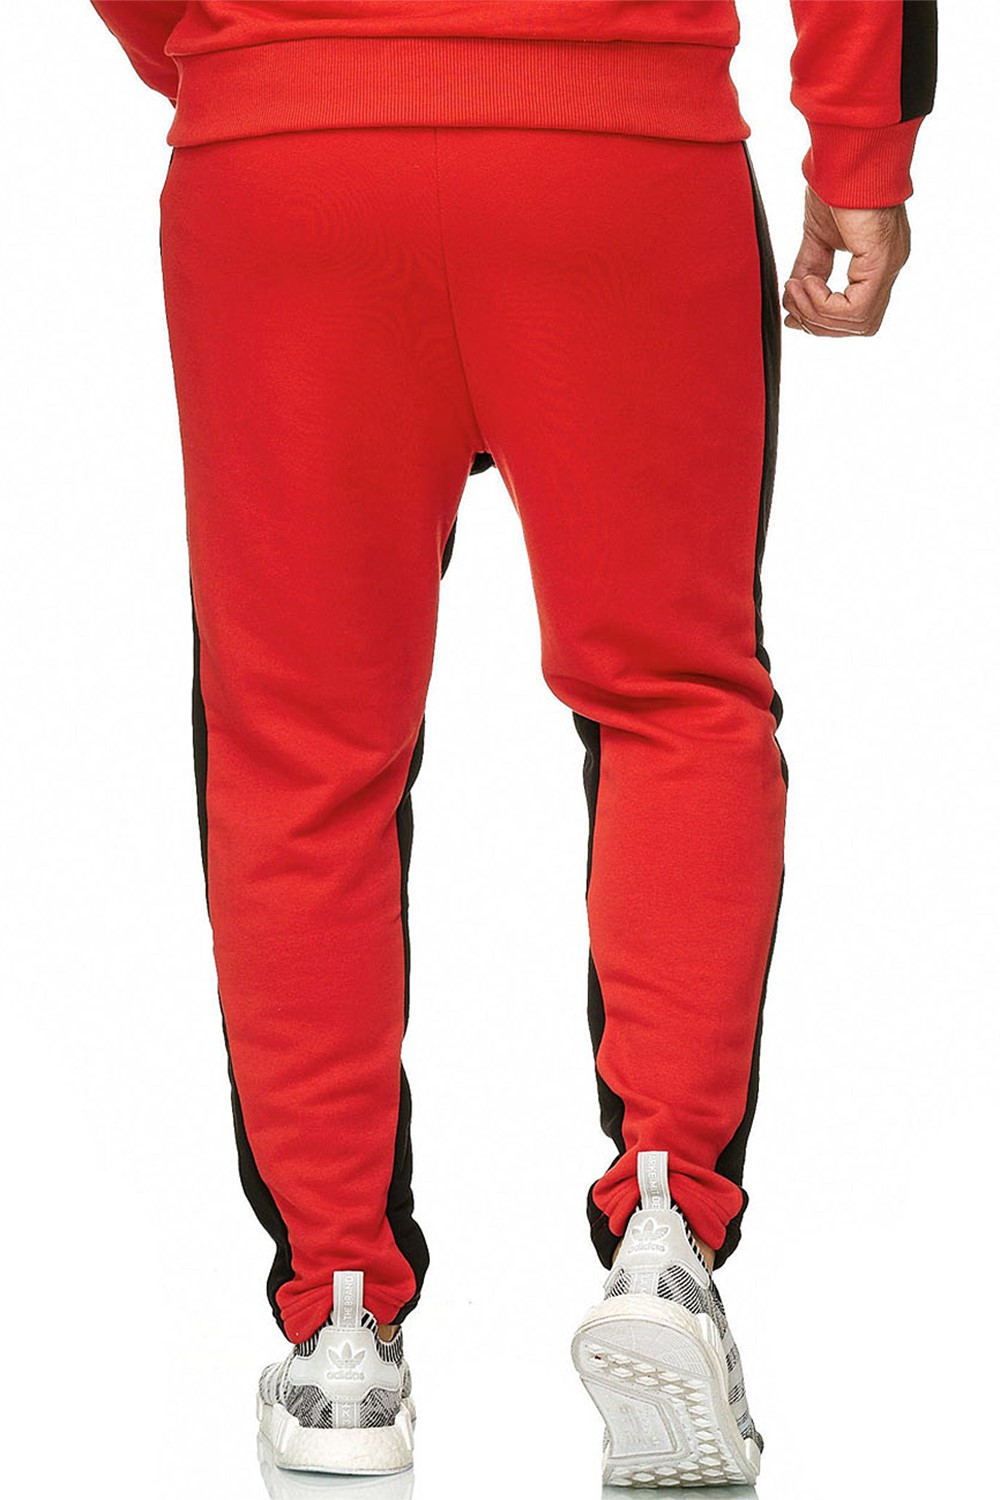 Redbridge-senores-regular-fit-chandal-fitness-sueter-aerobic-pantalones miniatura 20